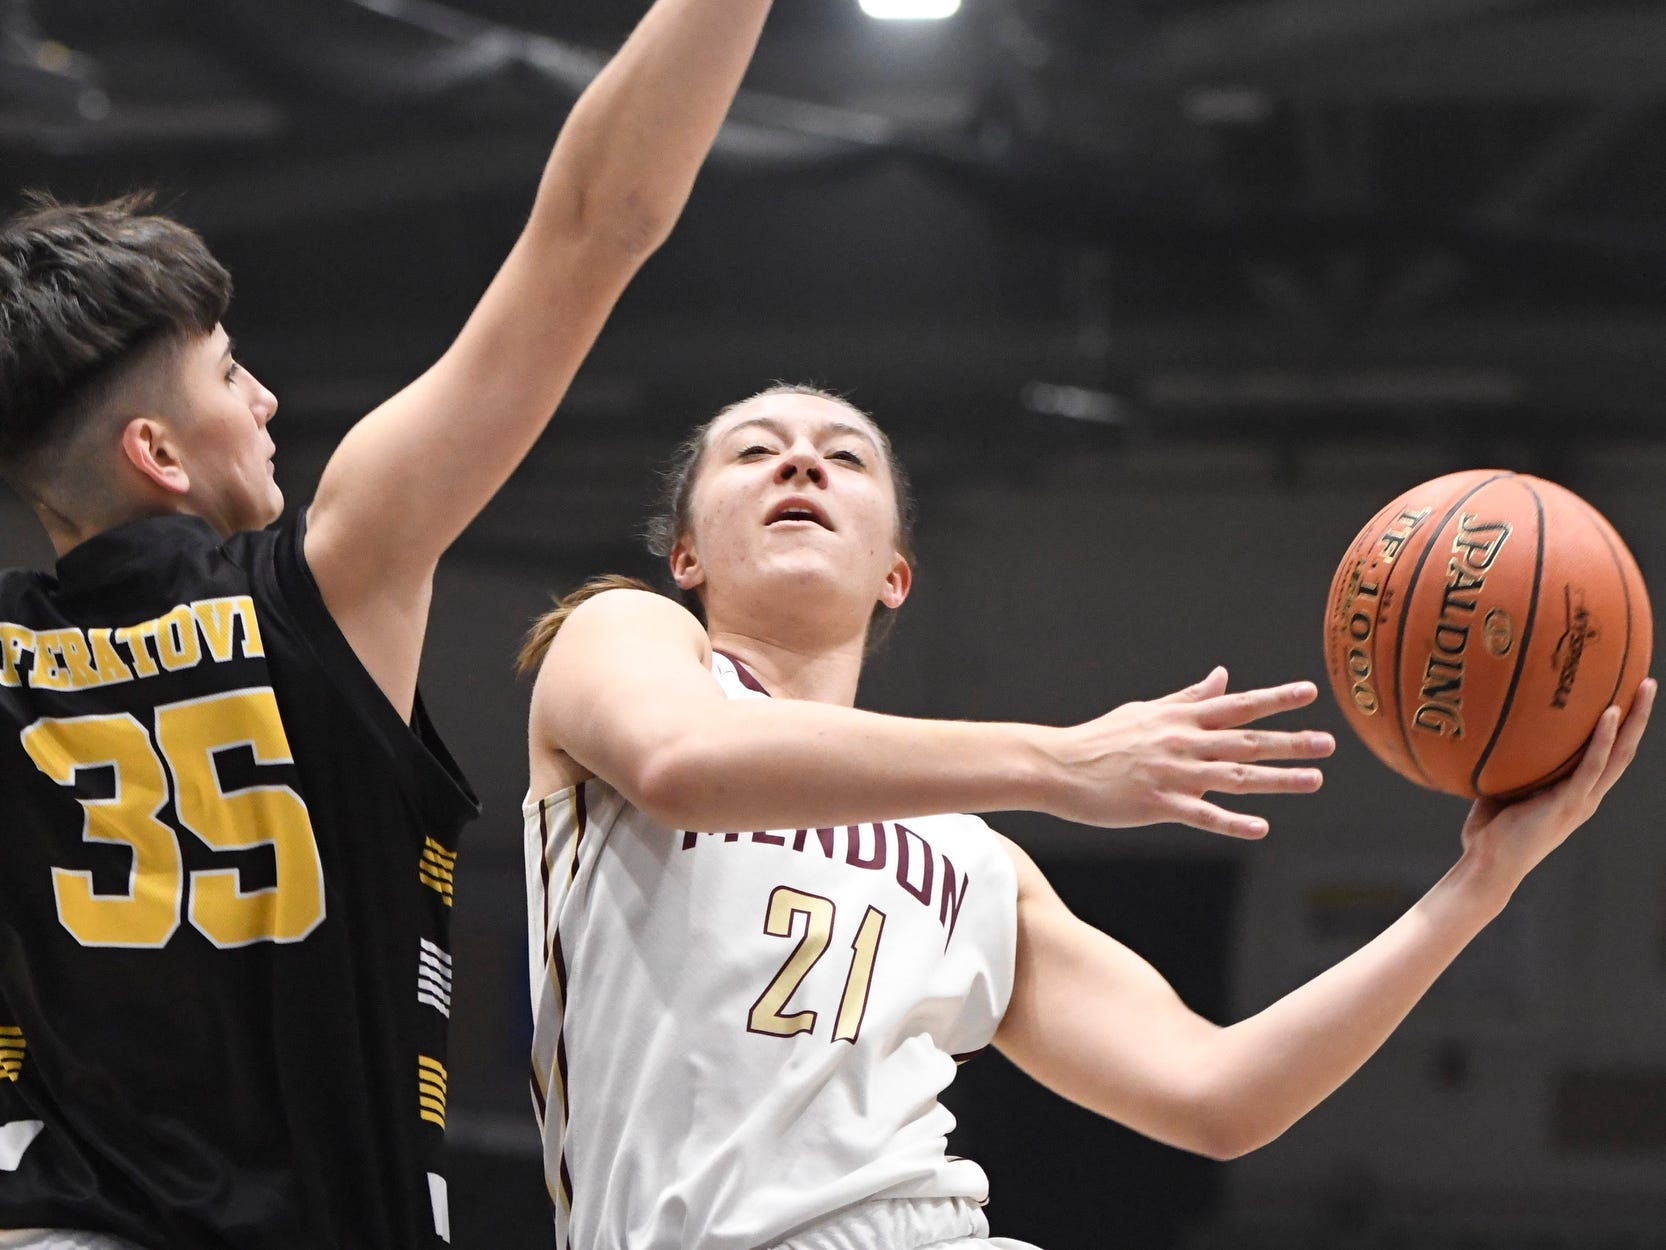 James Madison's Melinda Feratovic attempts to block a shot by Pittsford Mendon's Alana Fursman during their Girls Class A Federation Tournament of Champions semifinal at Cool Insuring Arena on Friday, March 23 in Glens Falls.